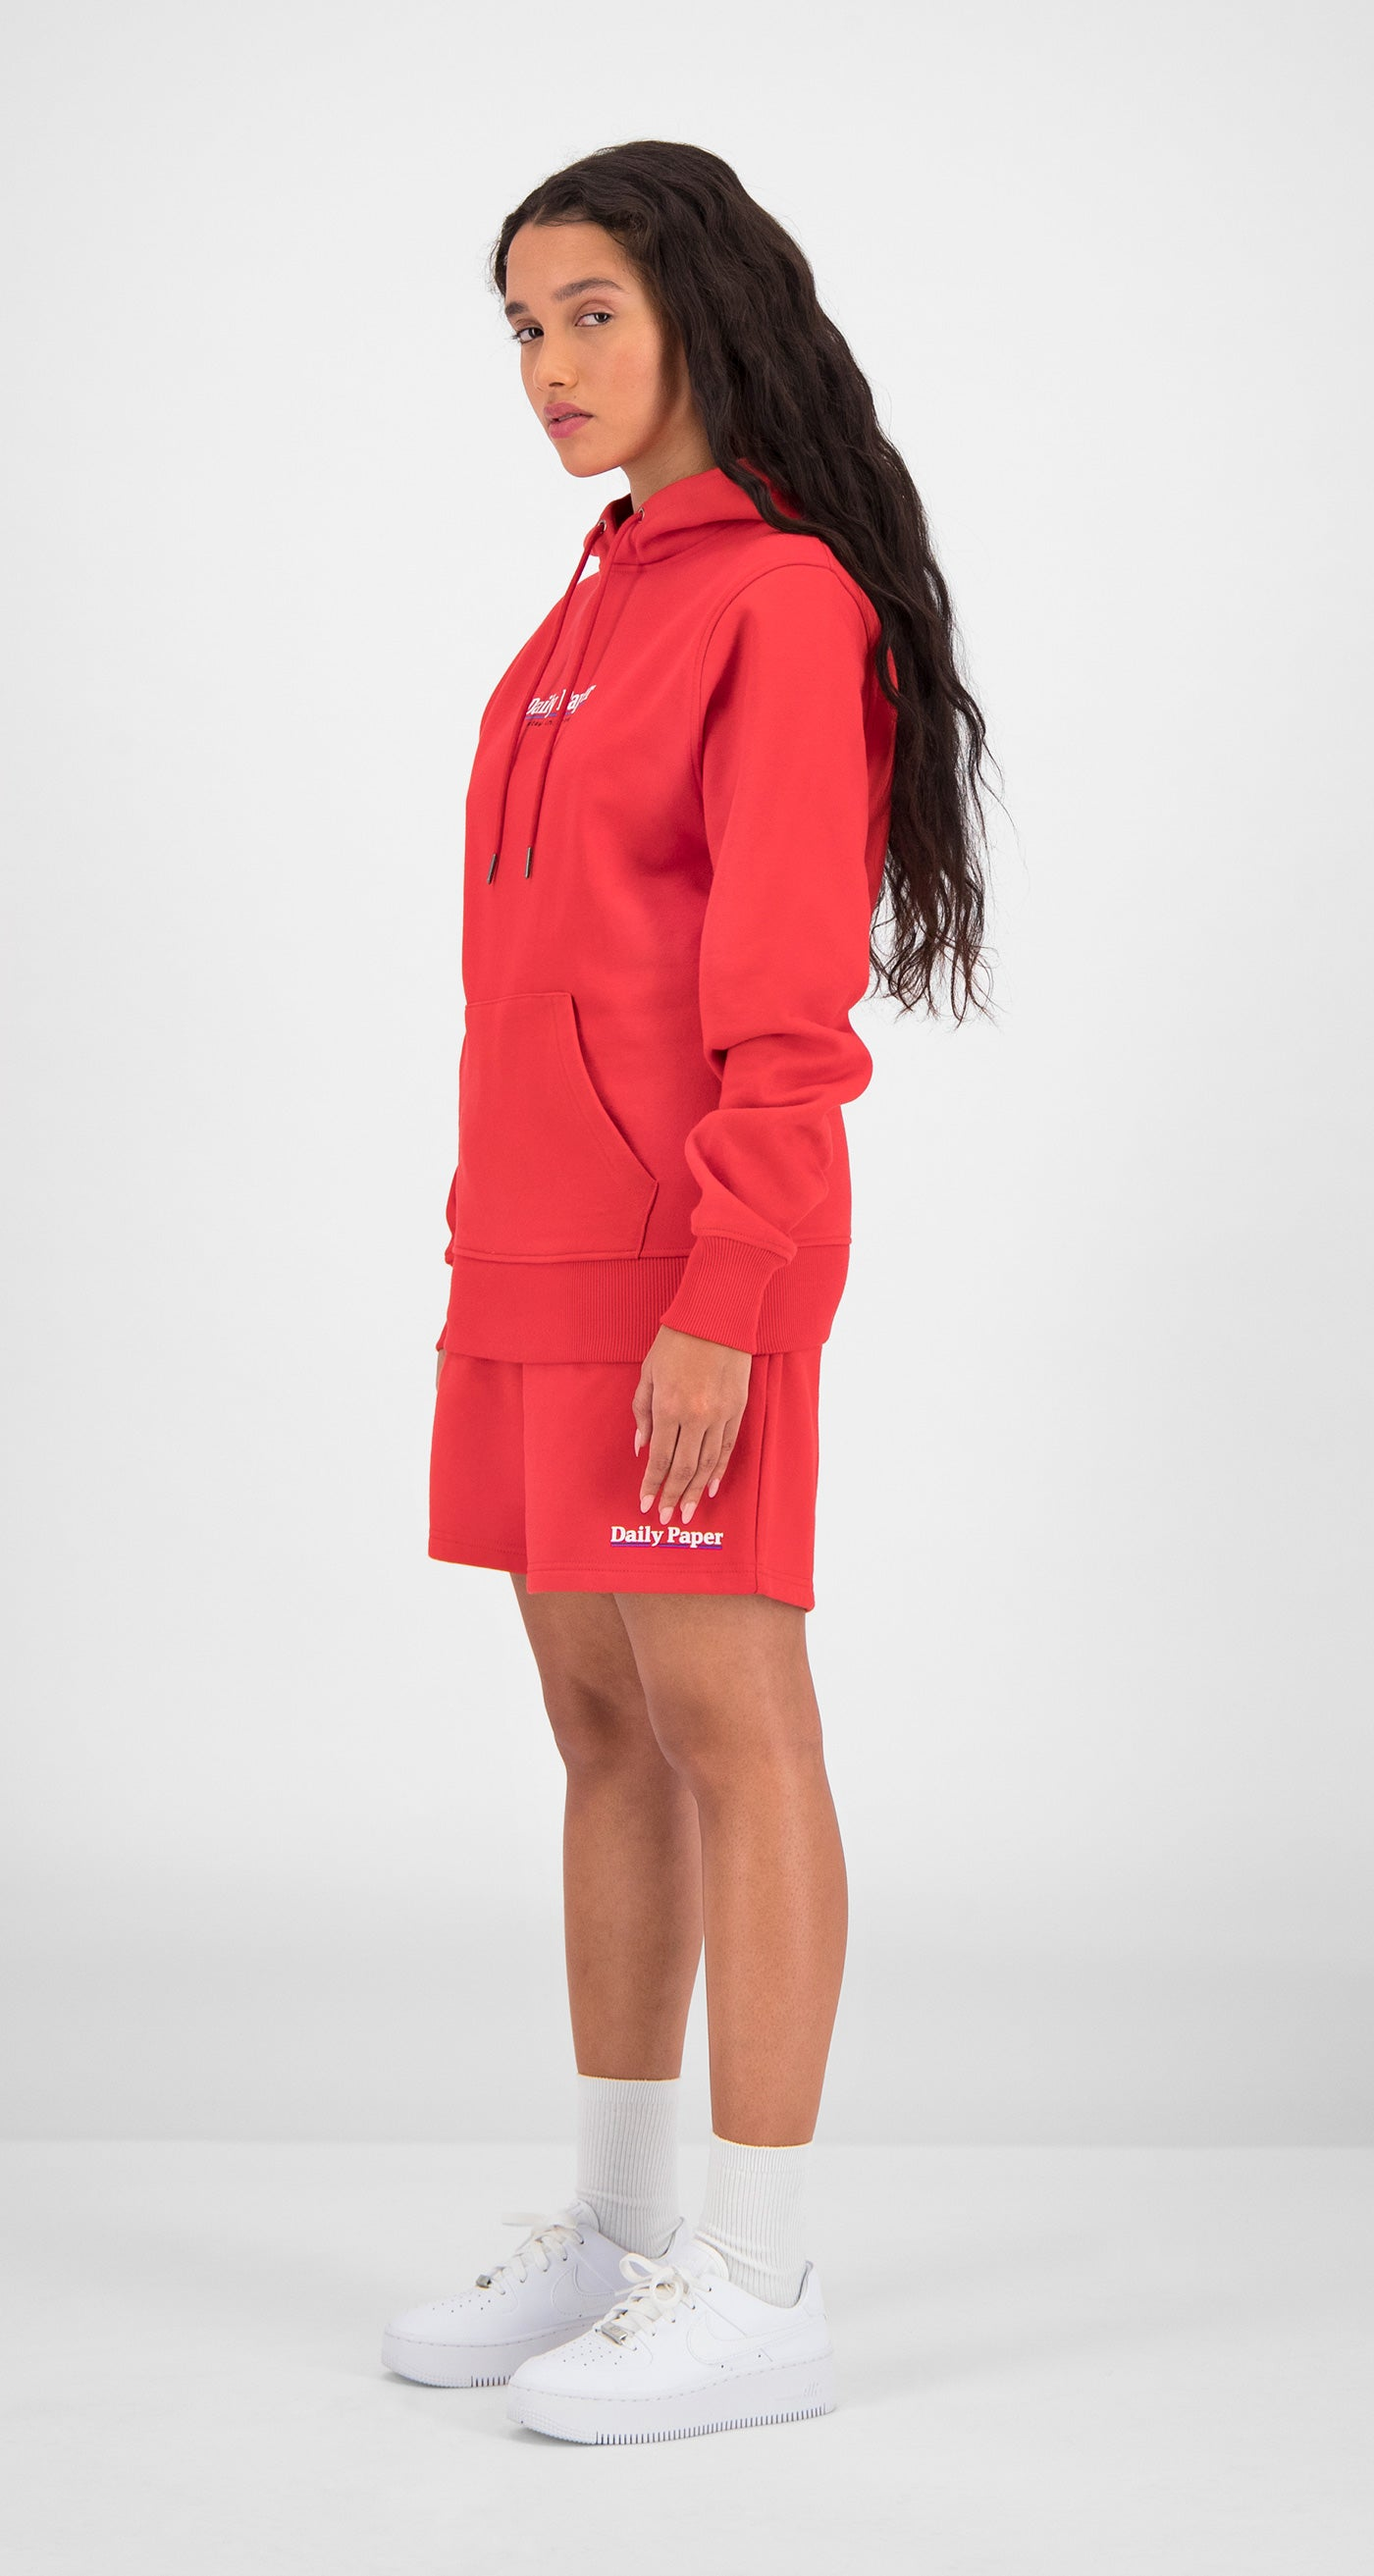 Daily Paper - Red Essential Hoody Women